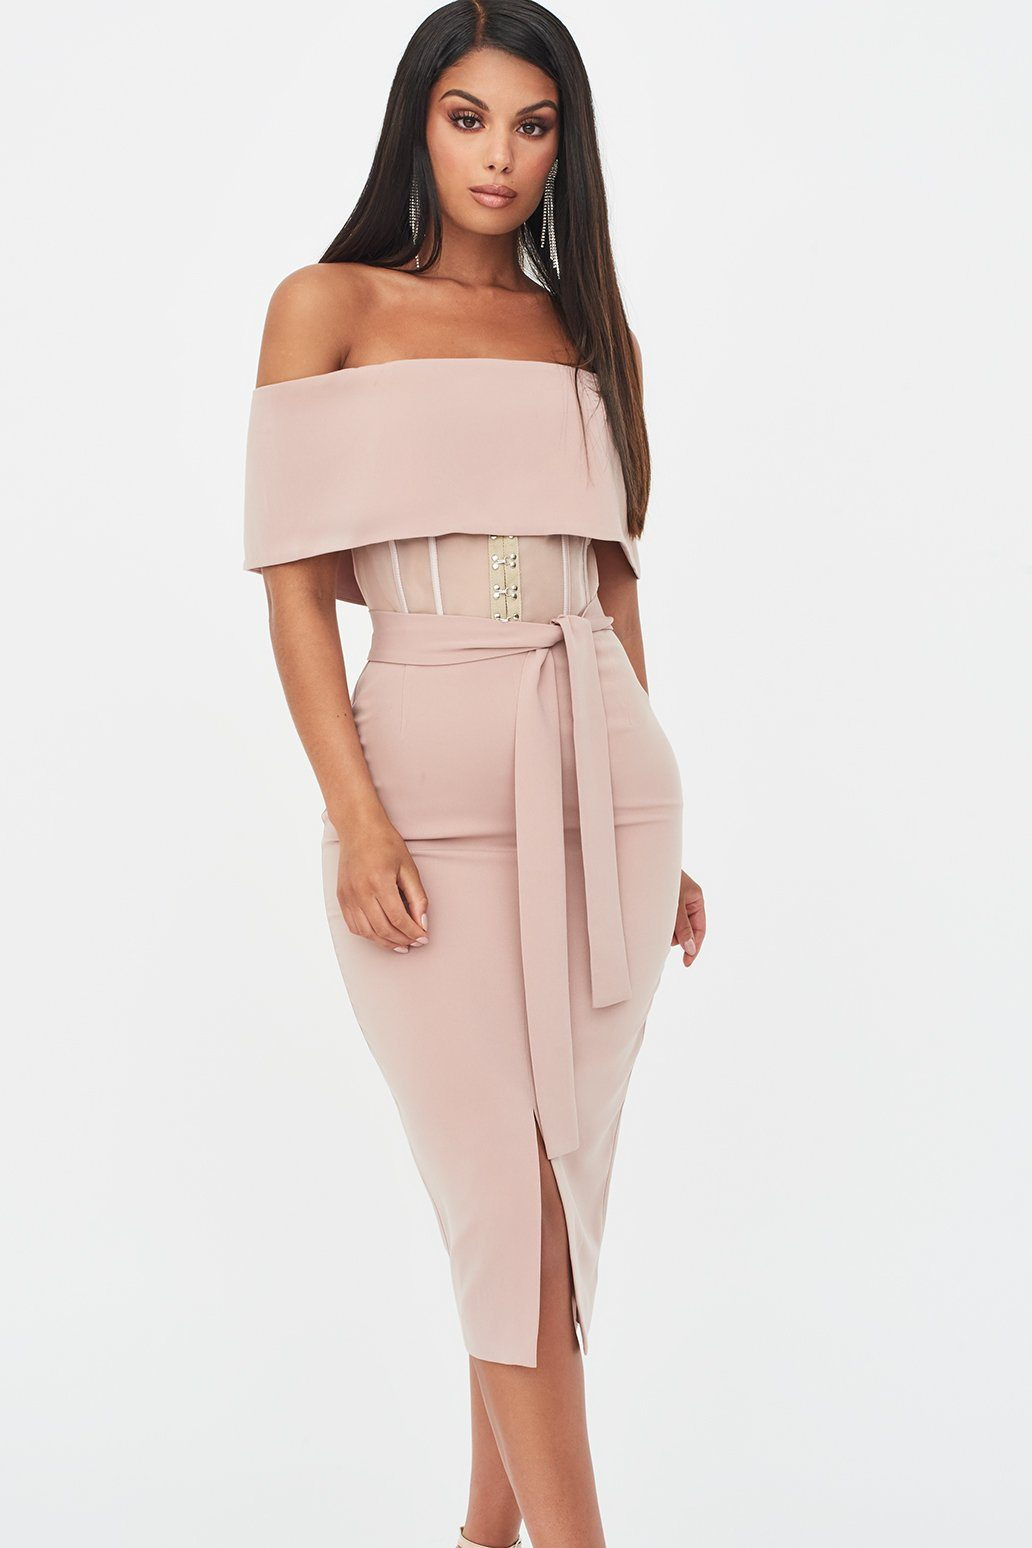 Rosie Connolly Sheer Corset Bardot Midi Dress in Mink